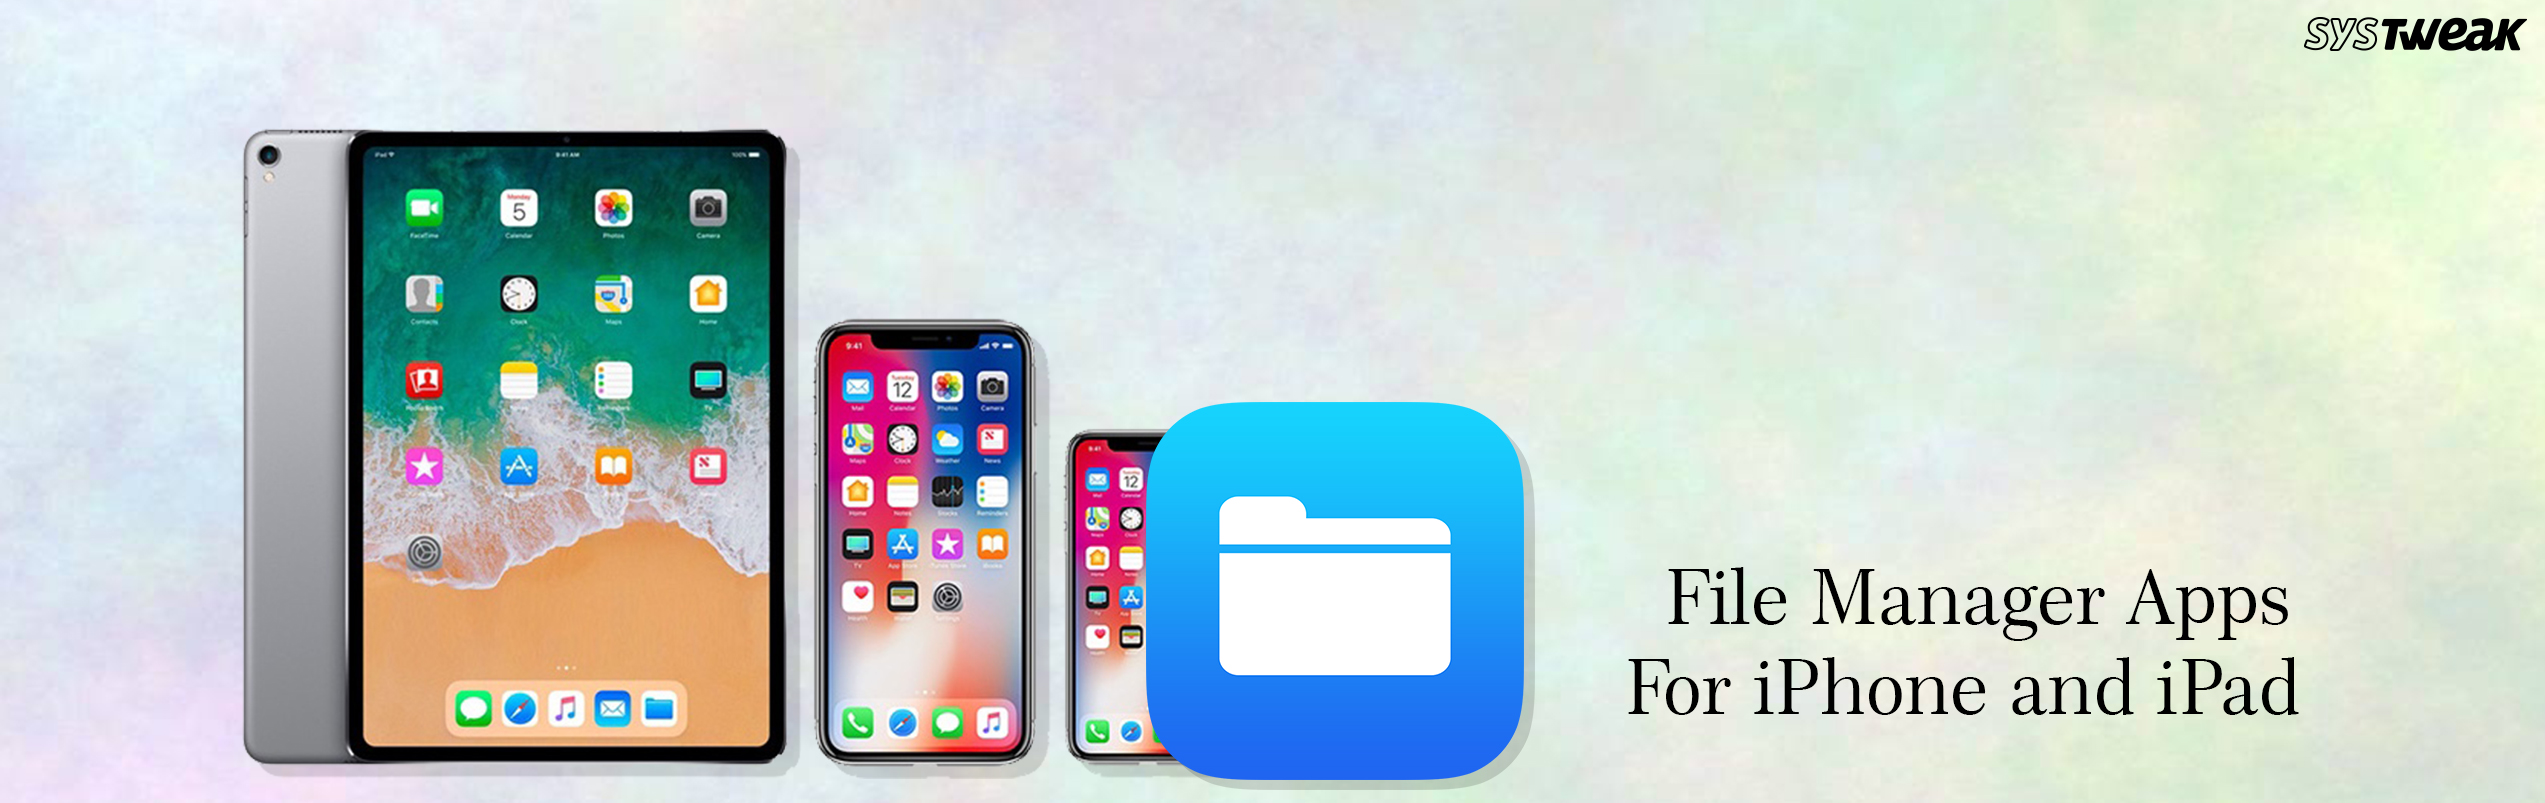 Best File Manager Apps For iPhones And iPads